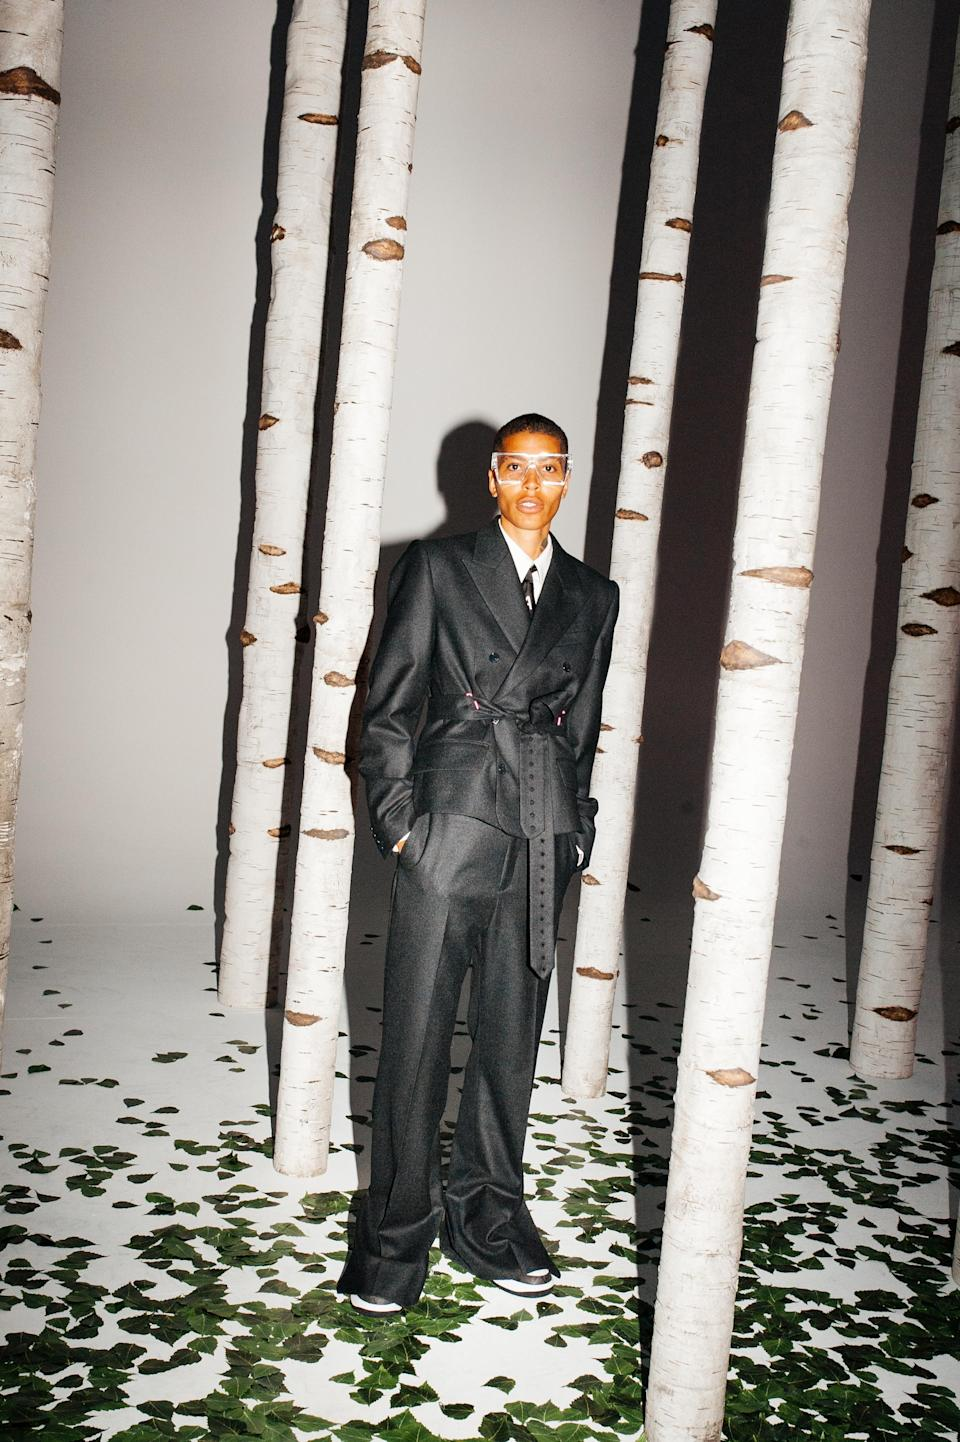 Poet and activist Kai-Isaiah Jamal models a look from Virgil Abloh's spring 2022 men's collection for Louis Vuitton. - Credit: Kuba Dabrowski/WWD